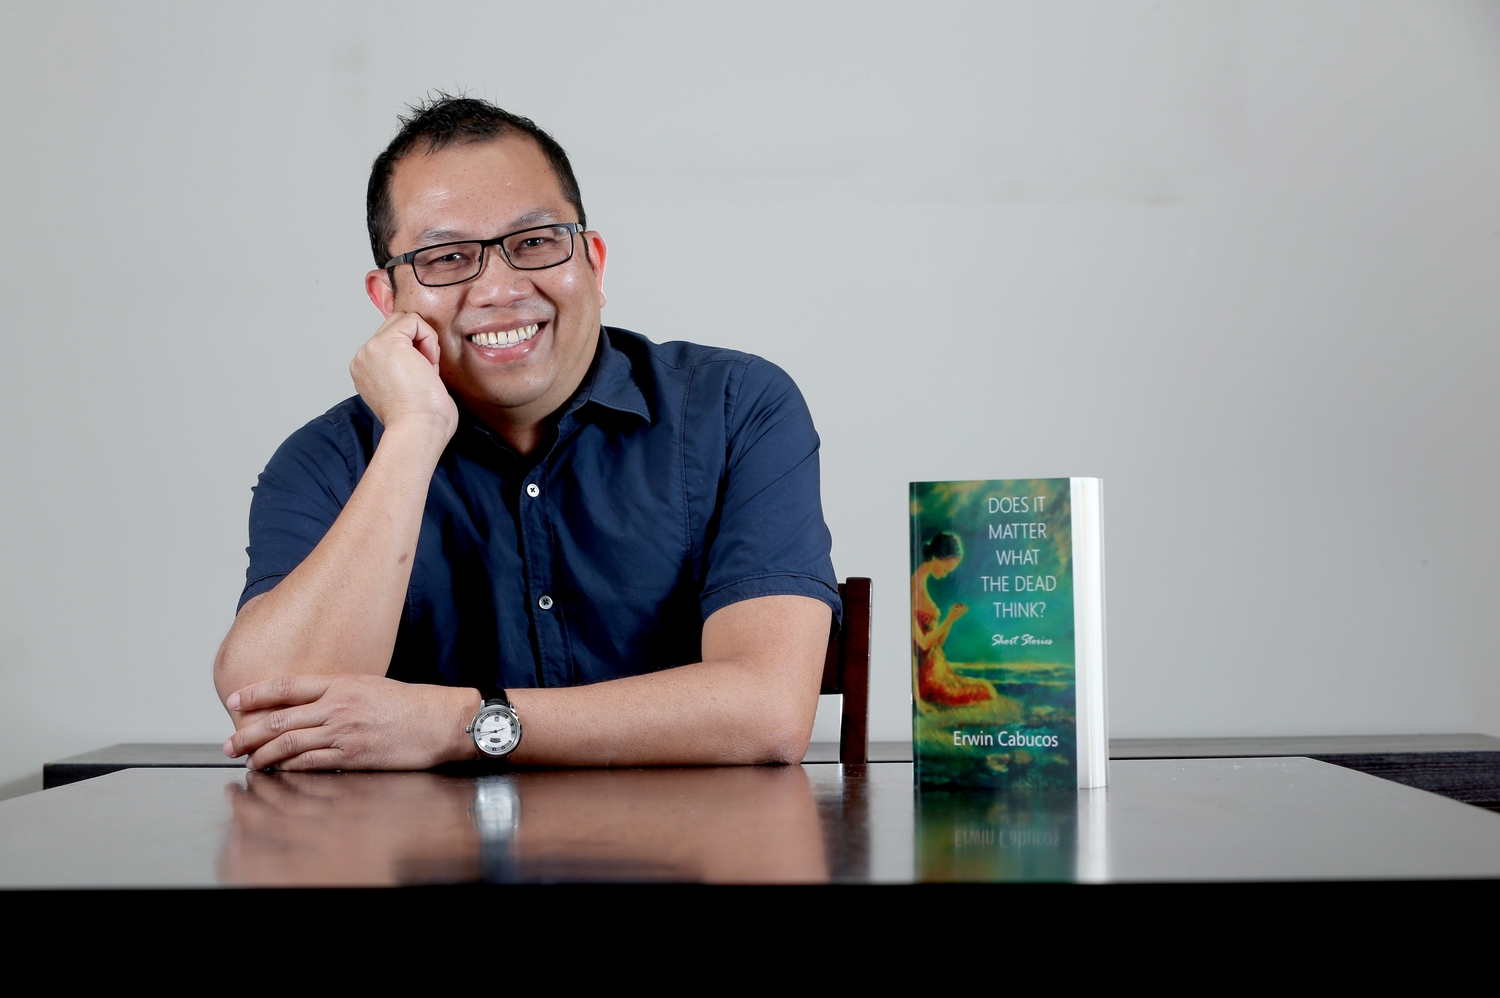 Author leaning on table